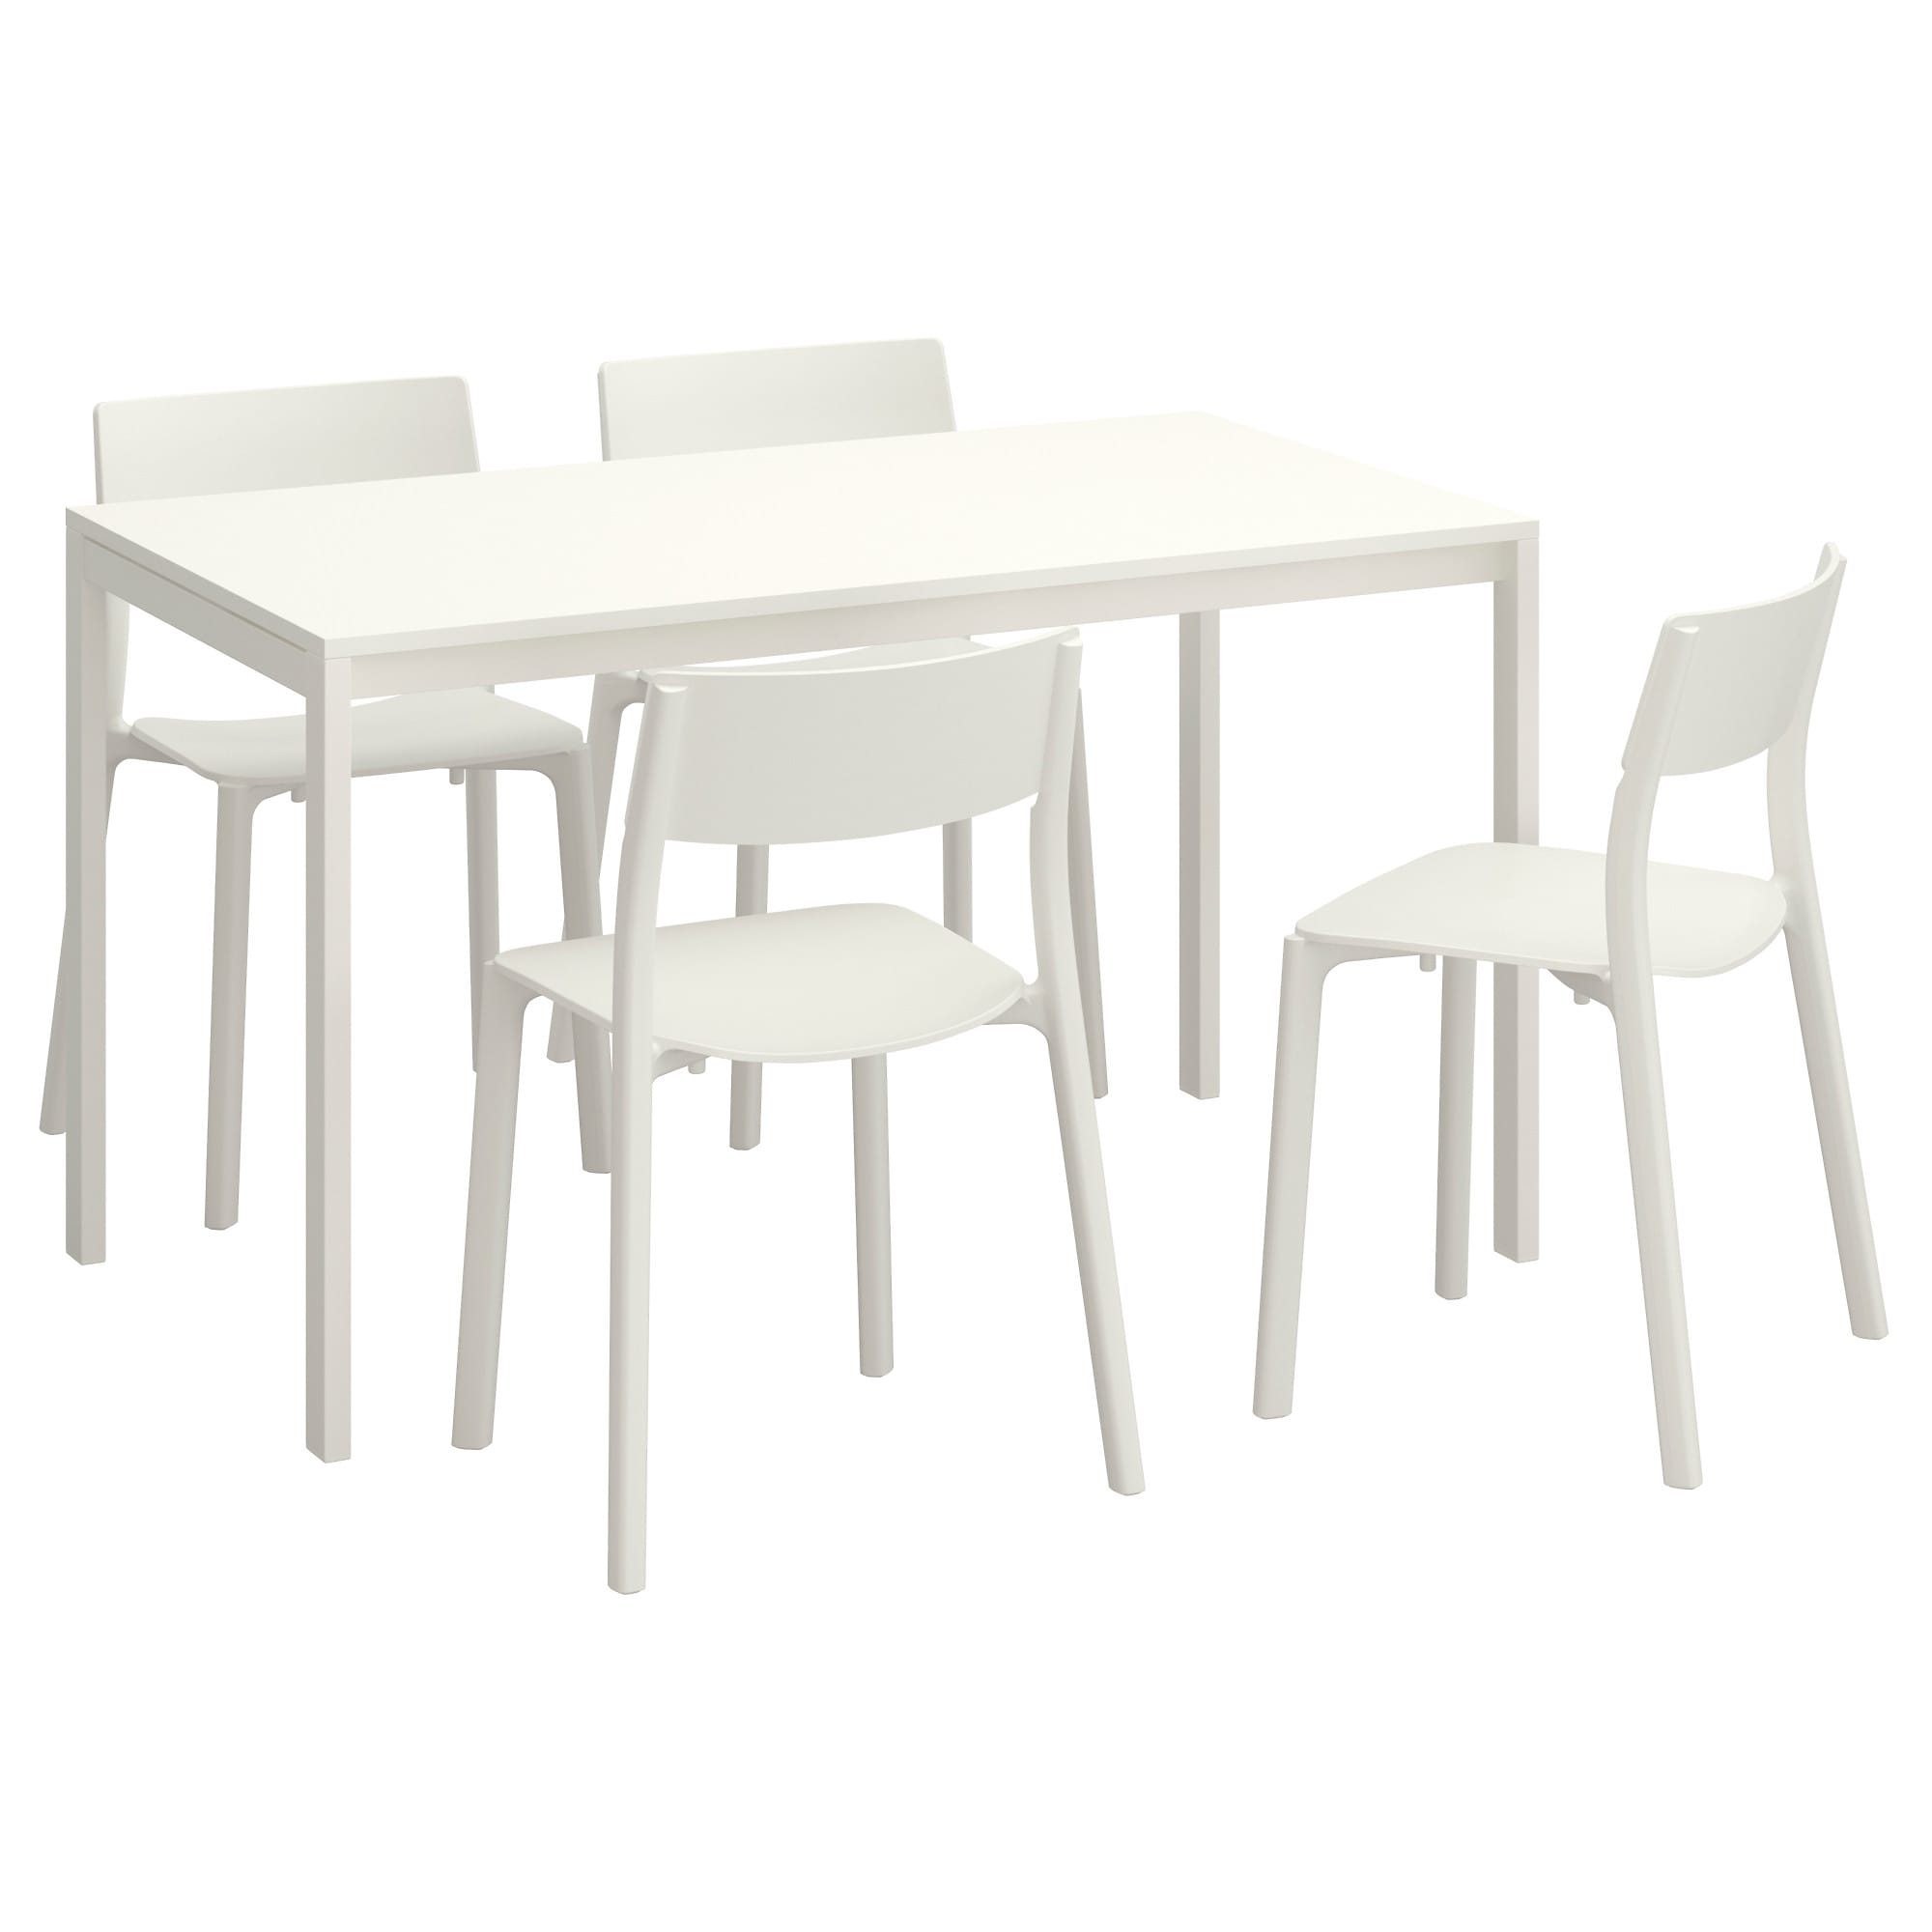 Popular White Melamine Dining Tables For Melltorp / Janinge Table And 4 Chairs – Ikea (View 24 of 25)